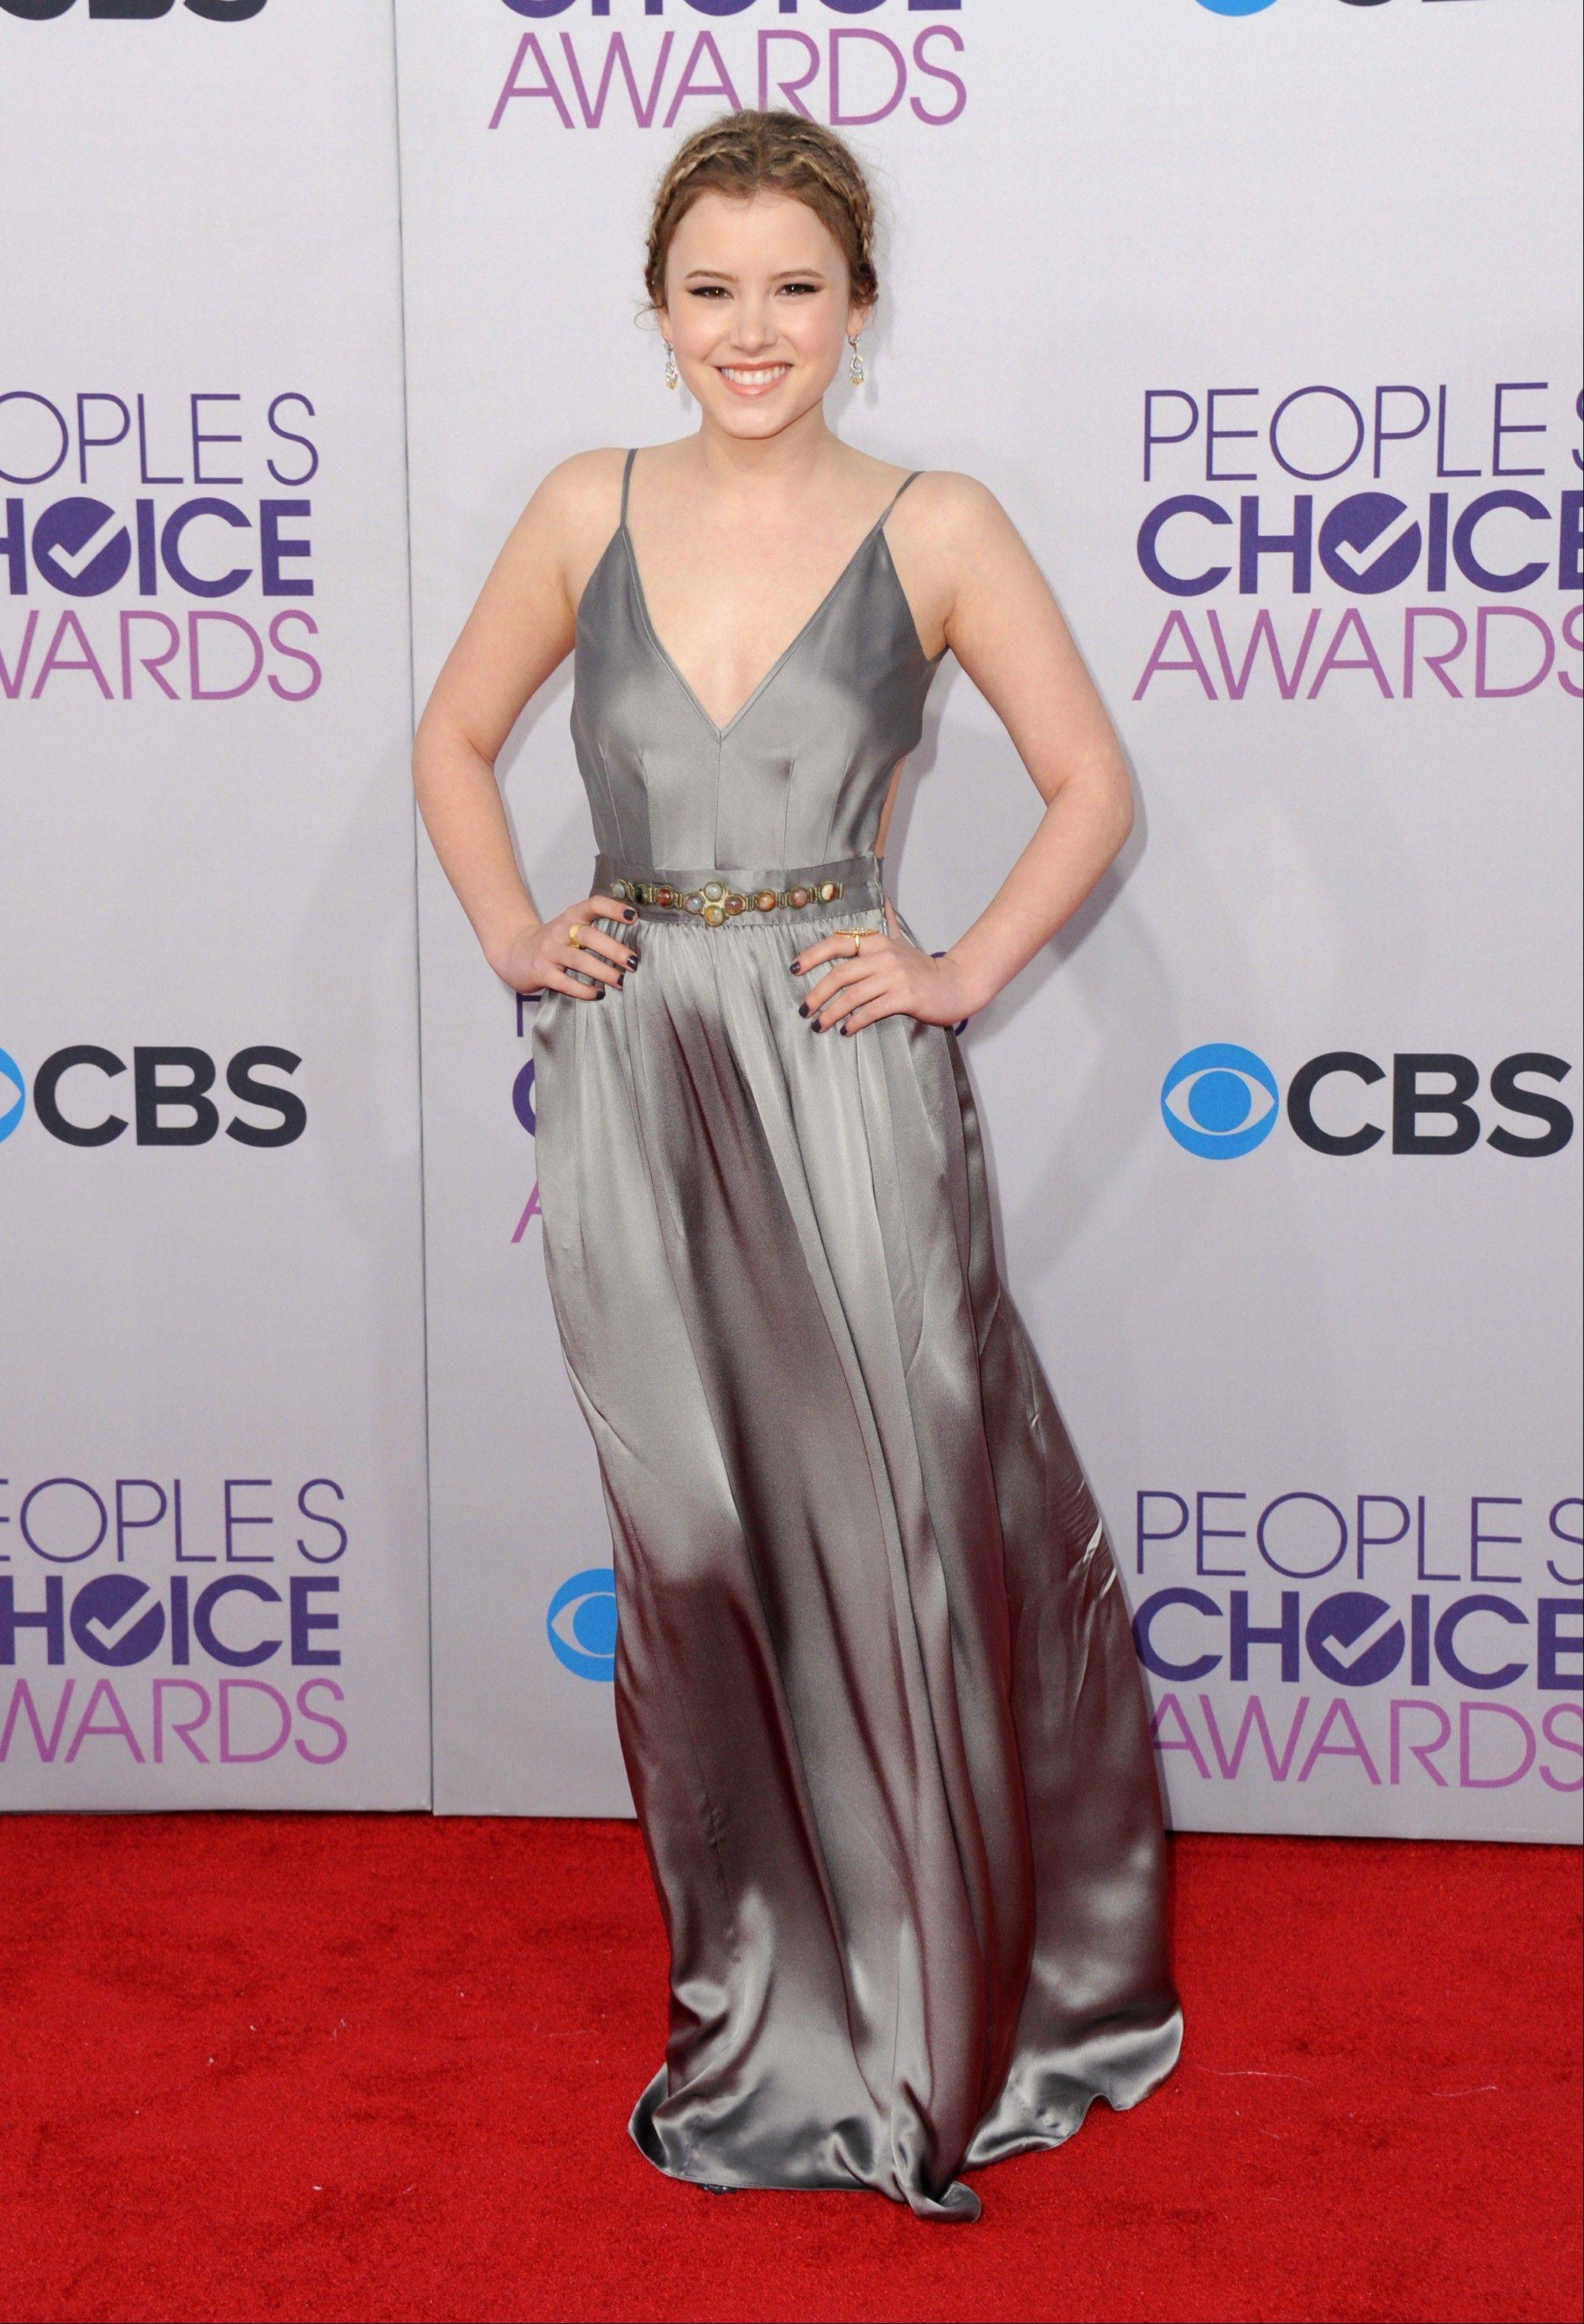 Taylor Spreitler arrives at the People's Choice Awards at the Nokia Theatre on Wednesday Jan. 9, 2013, in Los Angeles.